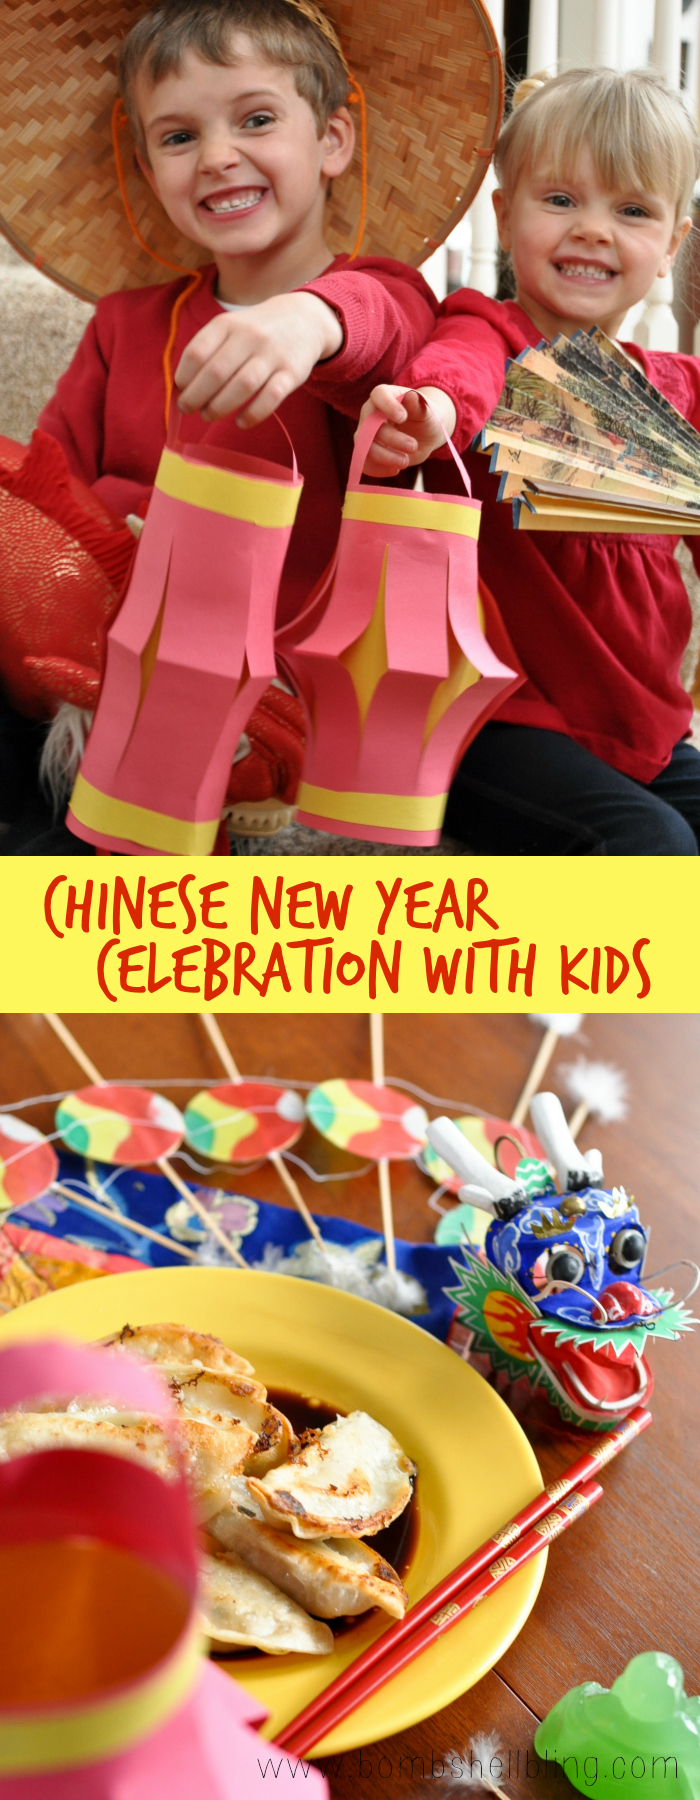 This Chinese New Year paper lantern kid craft is the perfect way to celebrate as a family! Pair this fun activity with some delicious dumplings!